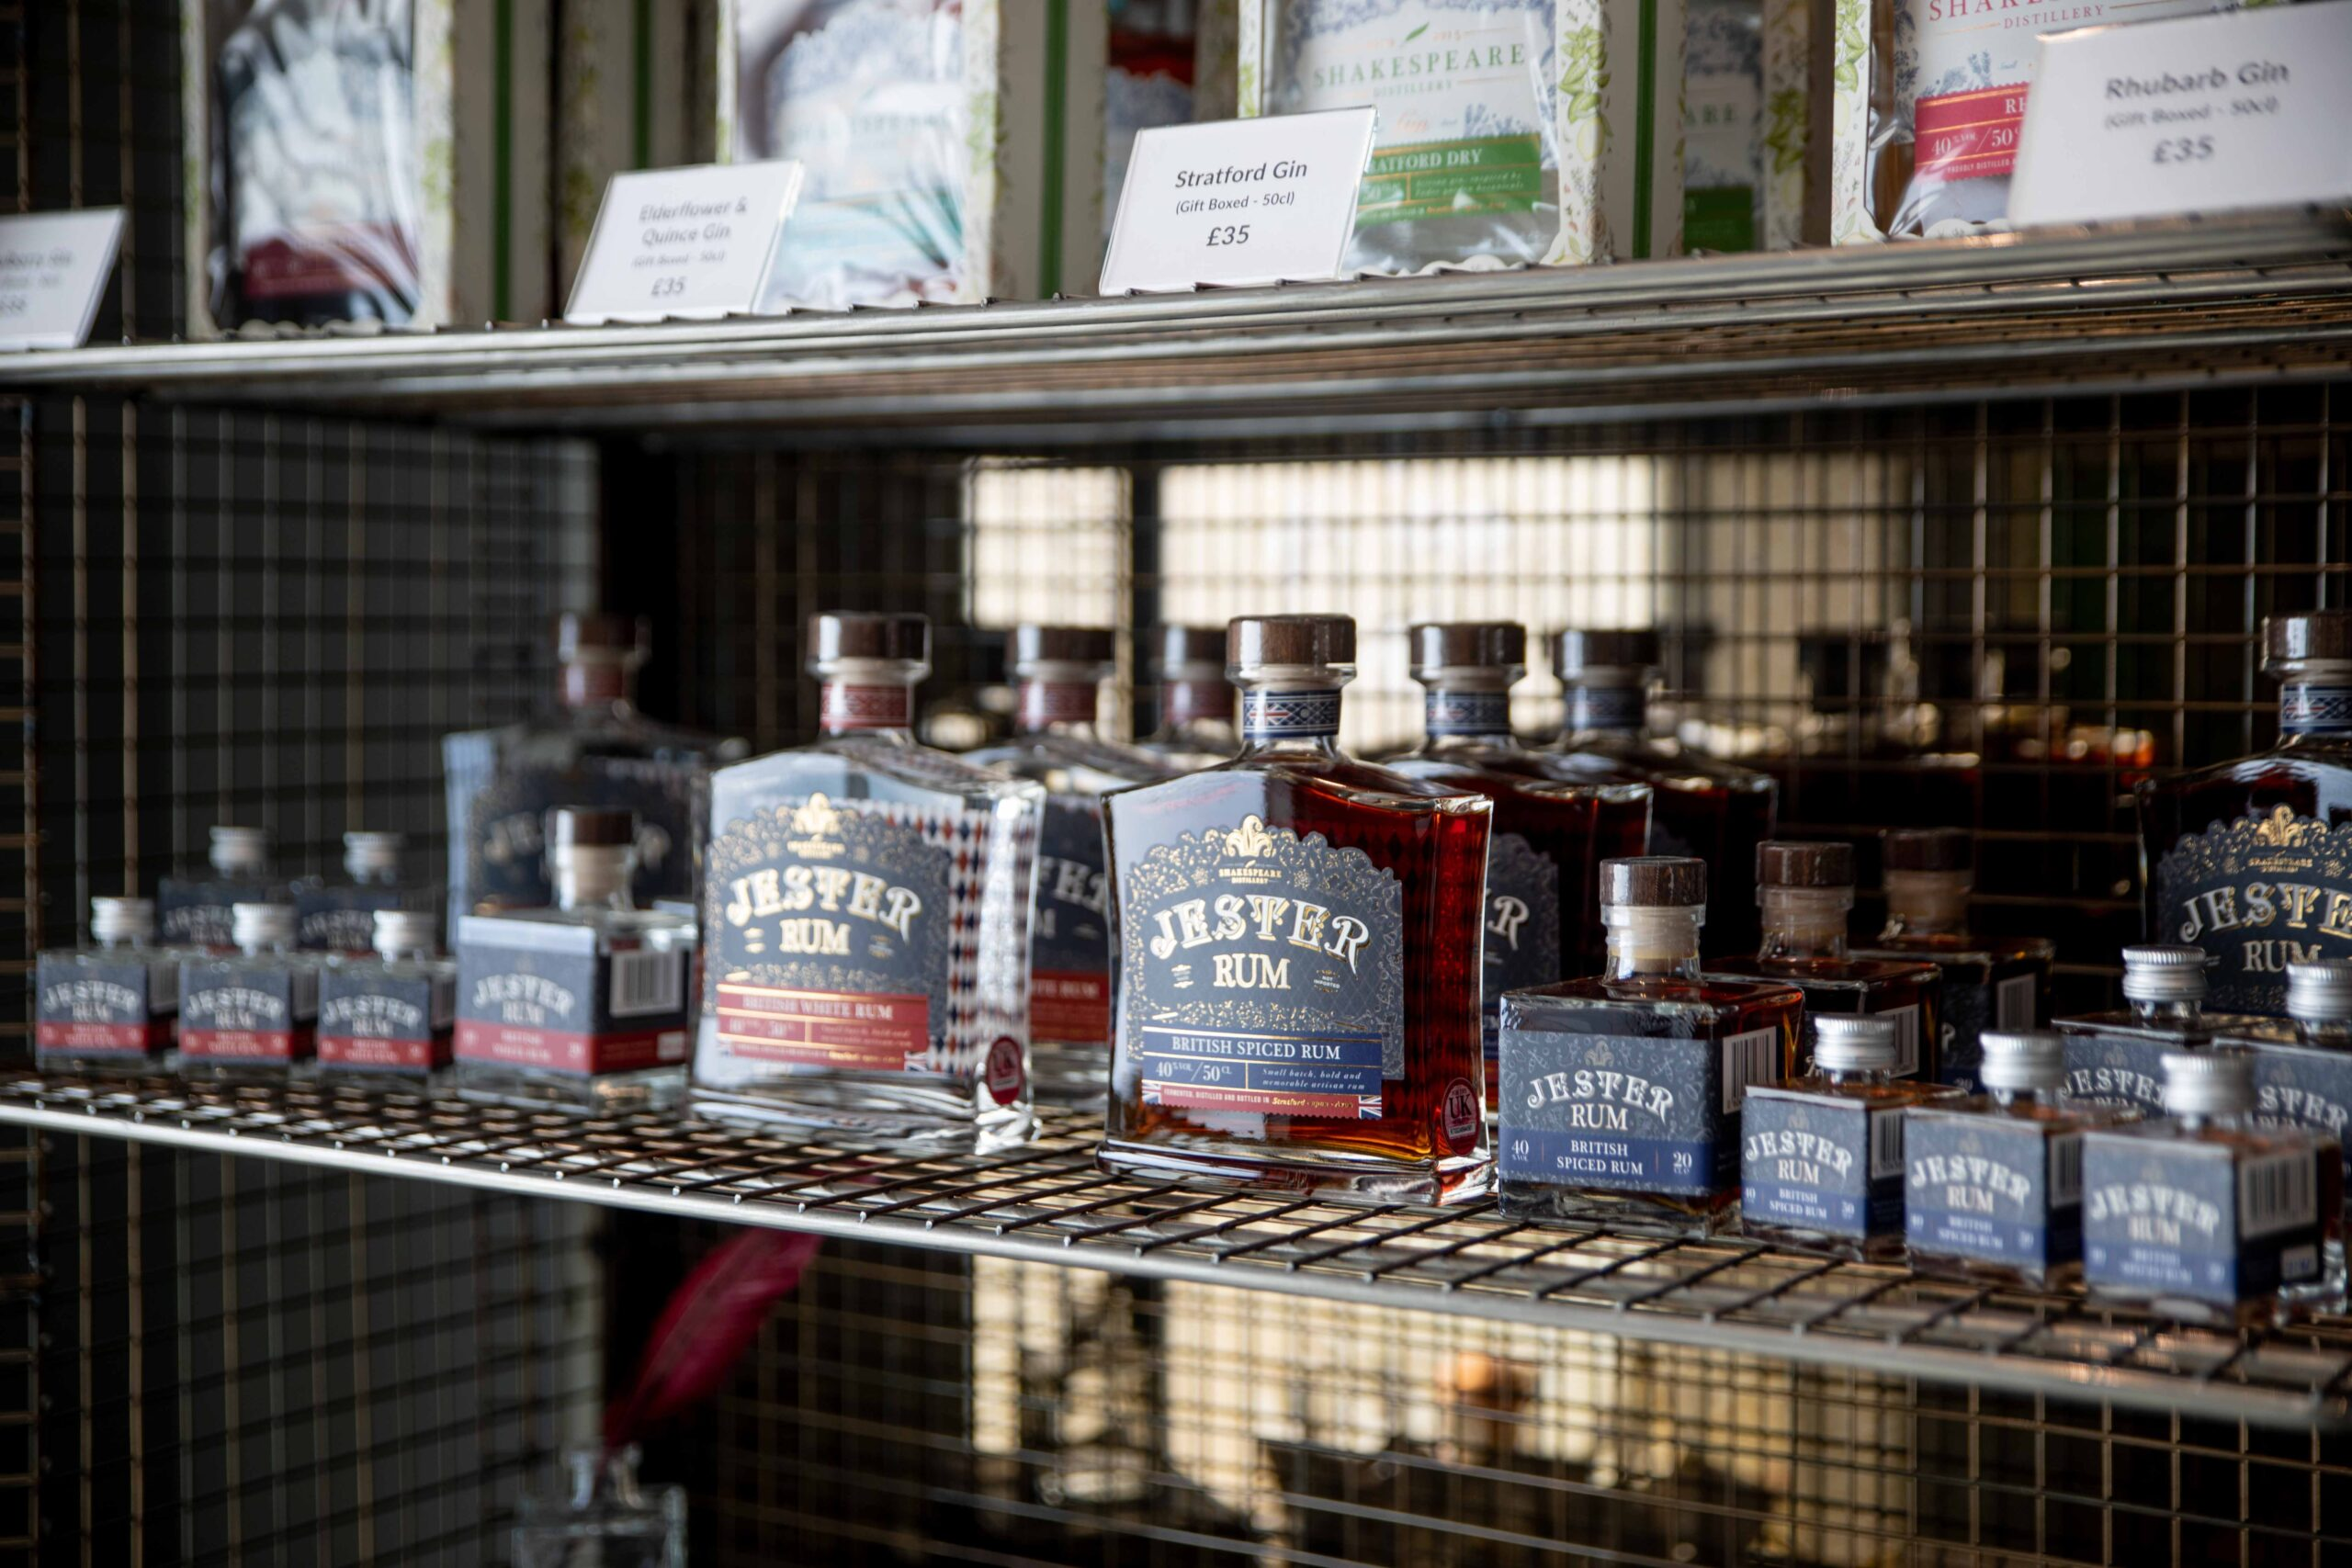 a shelf with many bottles of jester rum